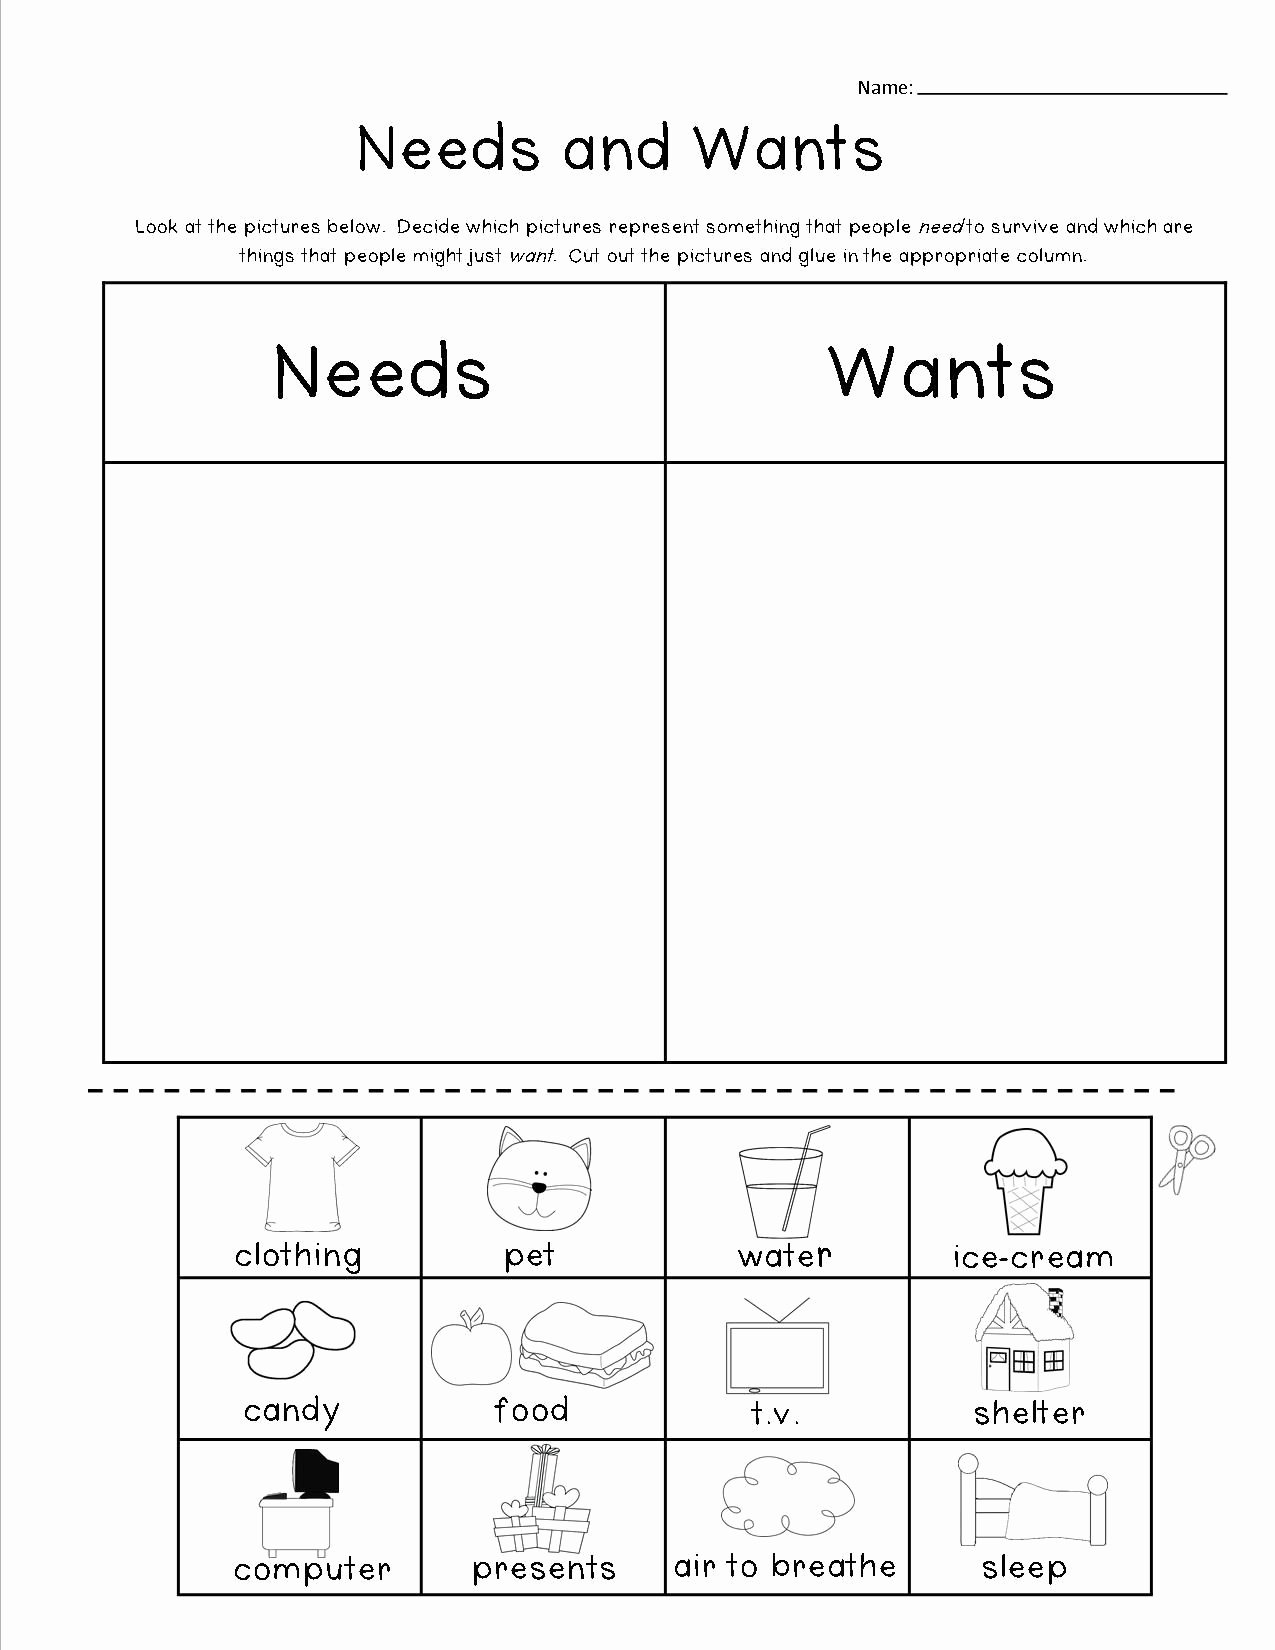 Wants and Needs Worksheet Luxury Cut and Paste Needs and Wants Includes A Cut and Paste